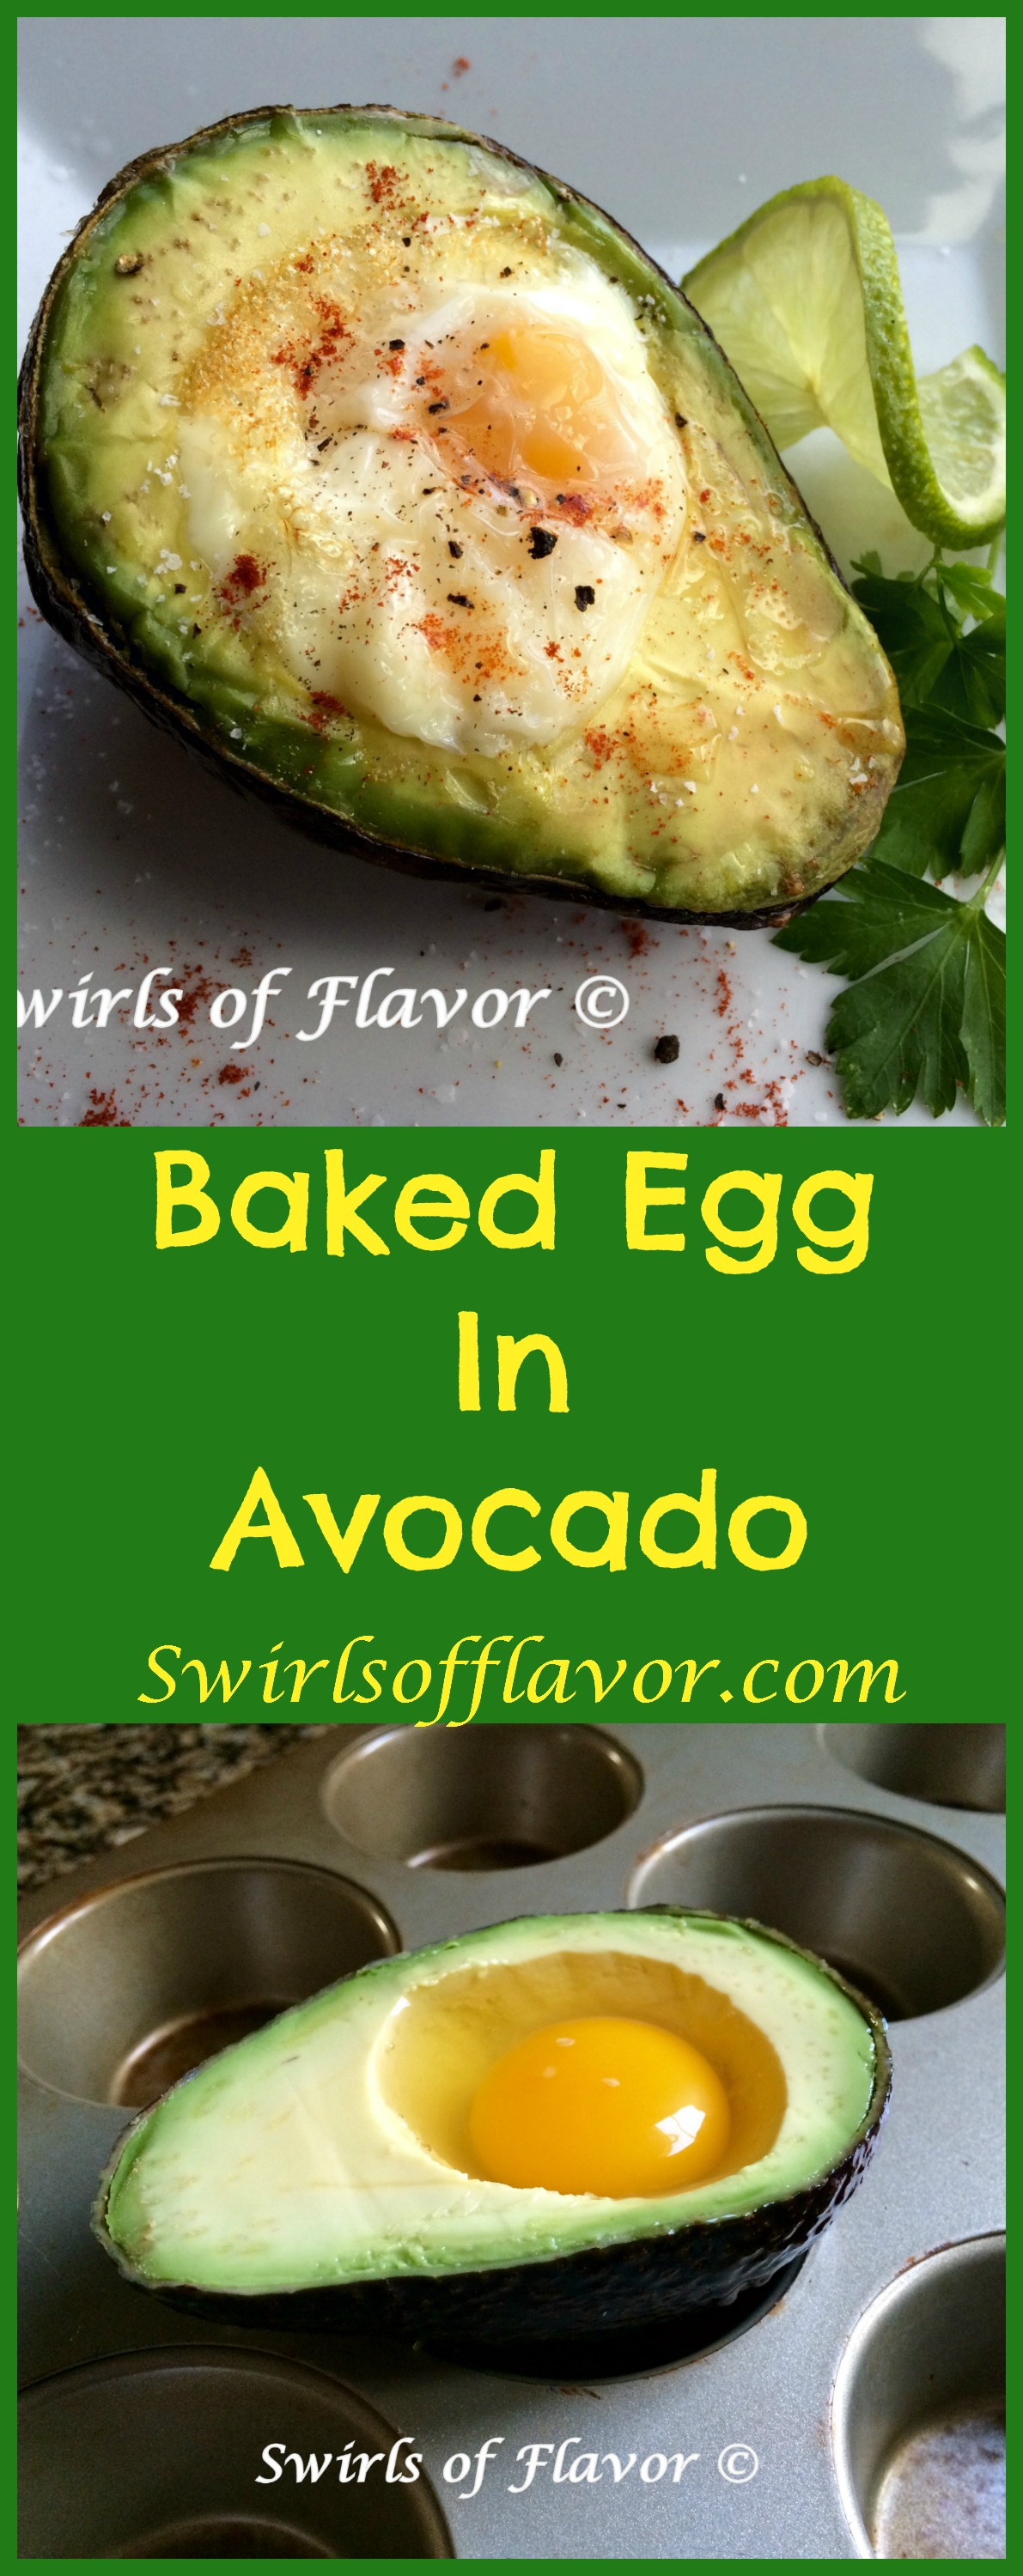 Baked Egg In Avocado combines the perfect protein with a healthy fat creating a powerhouse of nutrition for breakfast! #nationaleggday #easyrecipe #breakfast #avocado #egg #bakedegg #brunch #healthy #worldeggday #swirlsofflavor